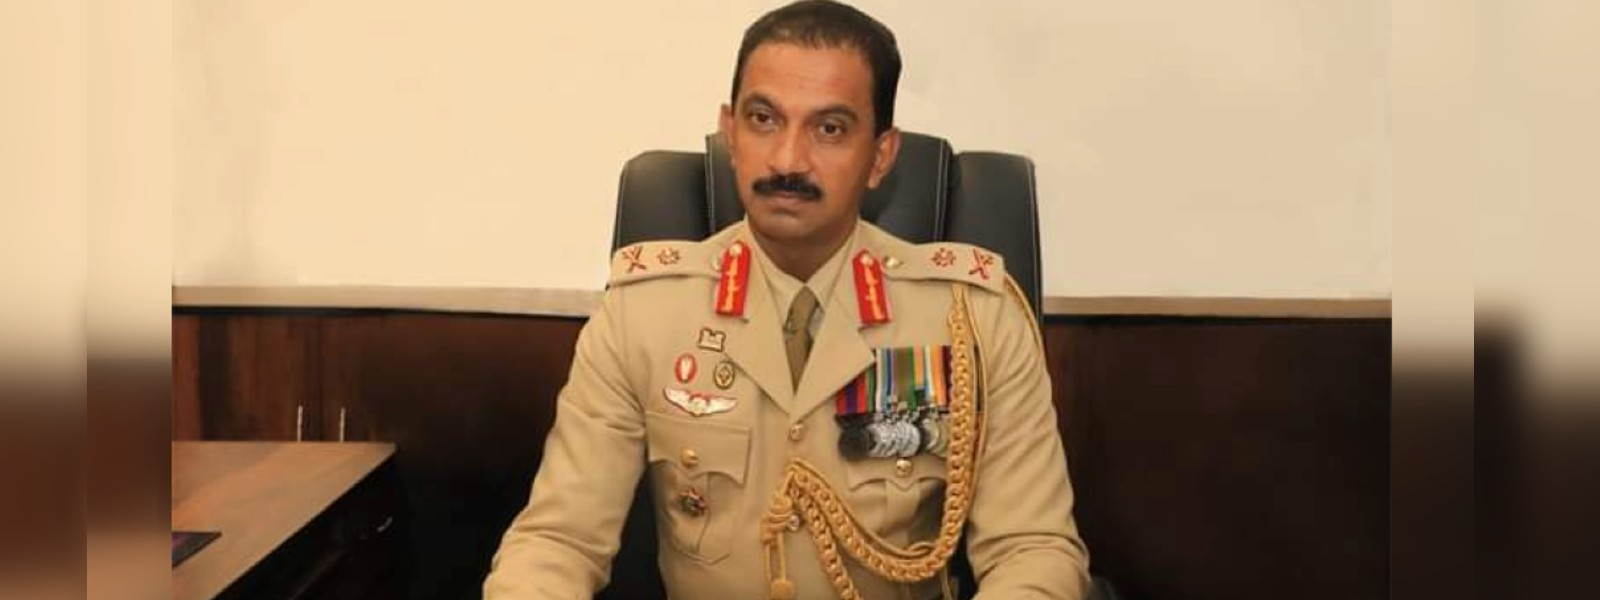 Maj. Gen. Jagath Gunawardena assumes duties as the new Chief of Staff of Army